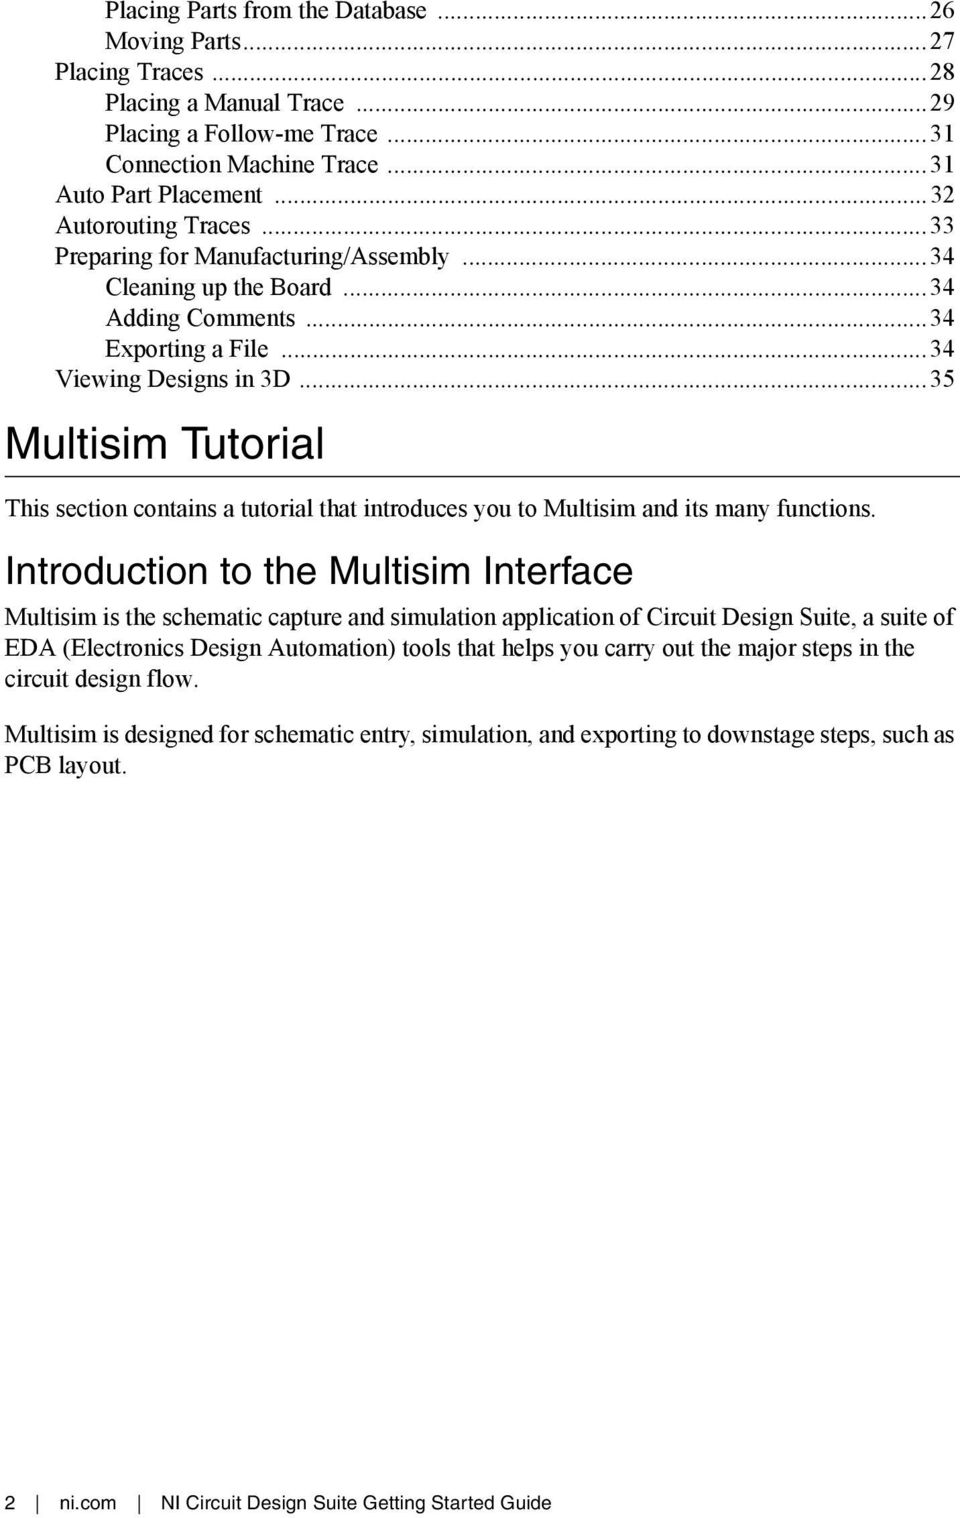 This Section Contains A Tutorial That Introduces You To Multisim And Your Own Like Circuit Design Simulation Application 35